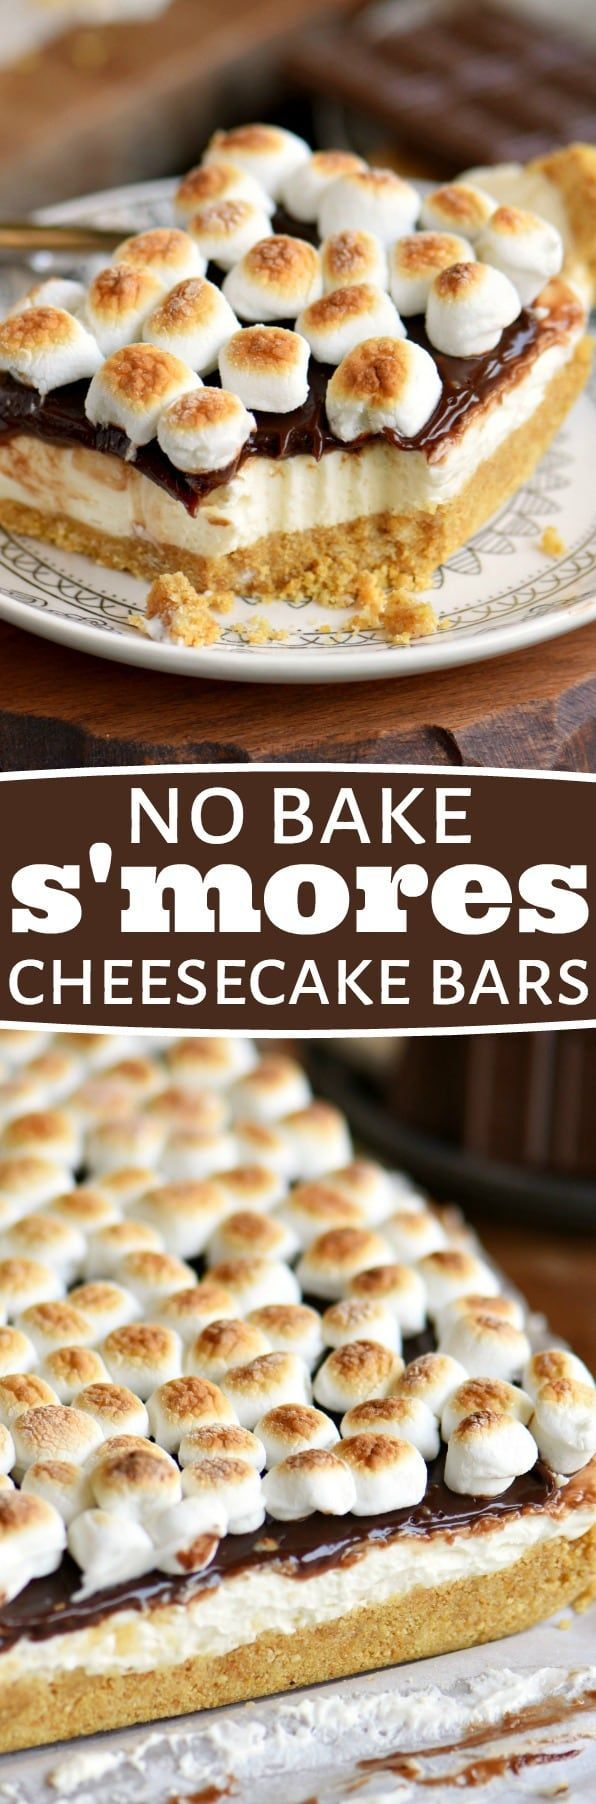 easy No Bake S'mores Cheesecake Bars are all you could ask for in a summer treat! Loaded with s'mores flavor without the fire OR baking! Just perfect for those hot summer months! // Mom On Timeout